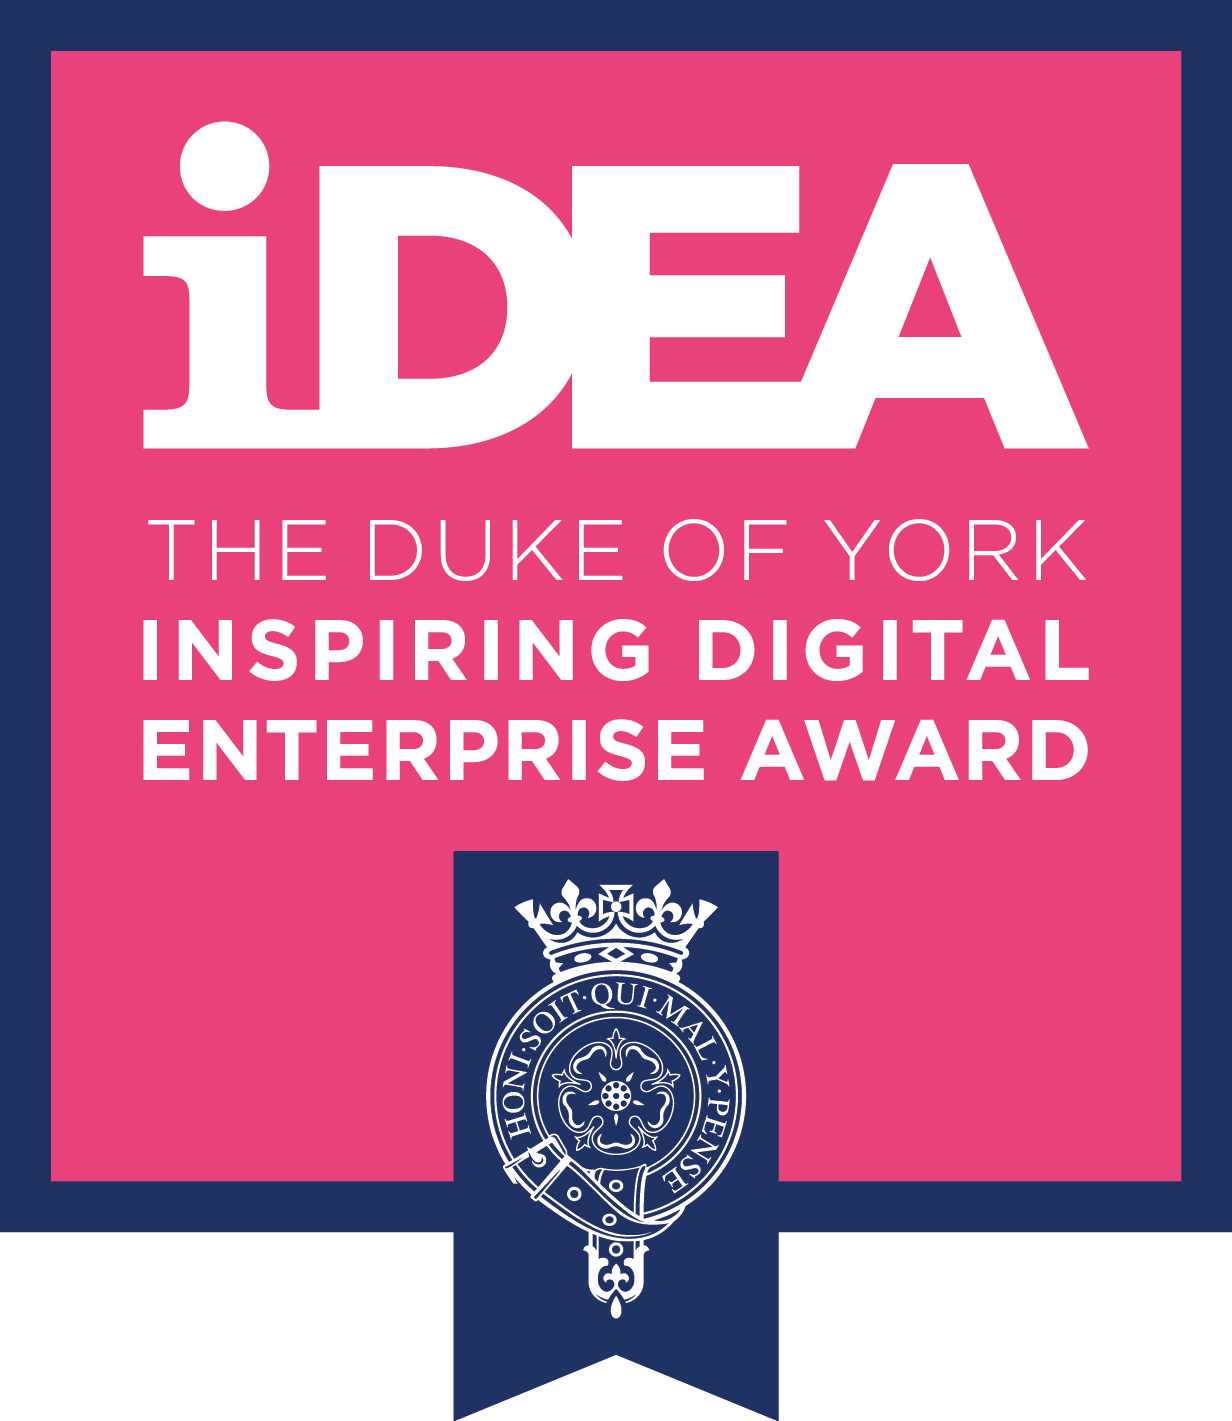 The Duke of York Inspiring Digital Enterprise Award